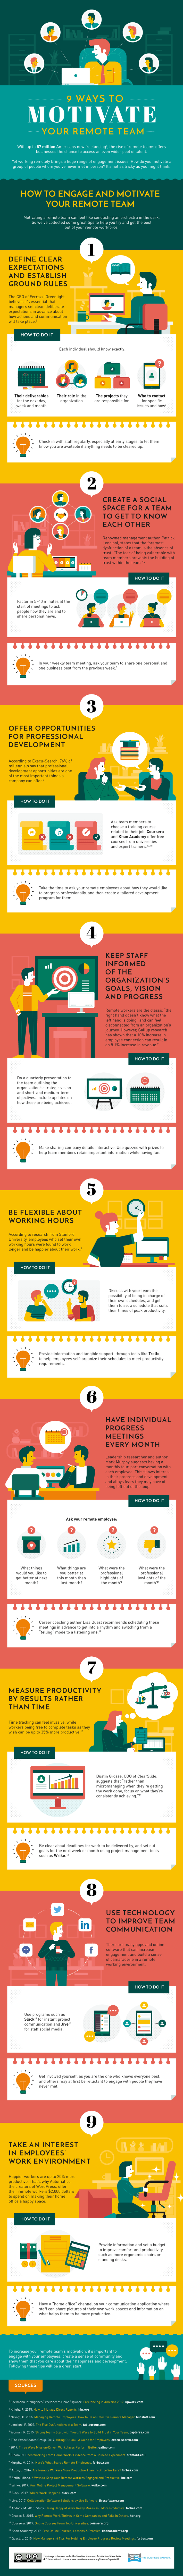 [Infographic] How To Build A Happy Remote Team